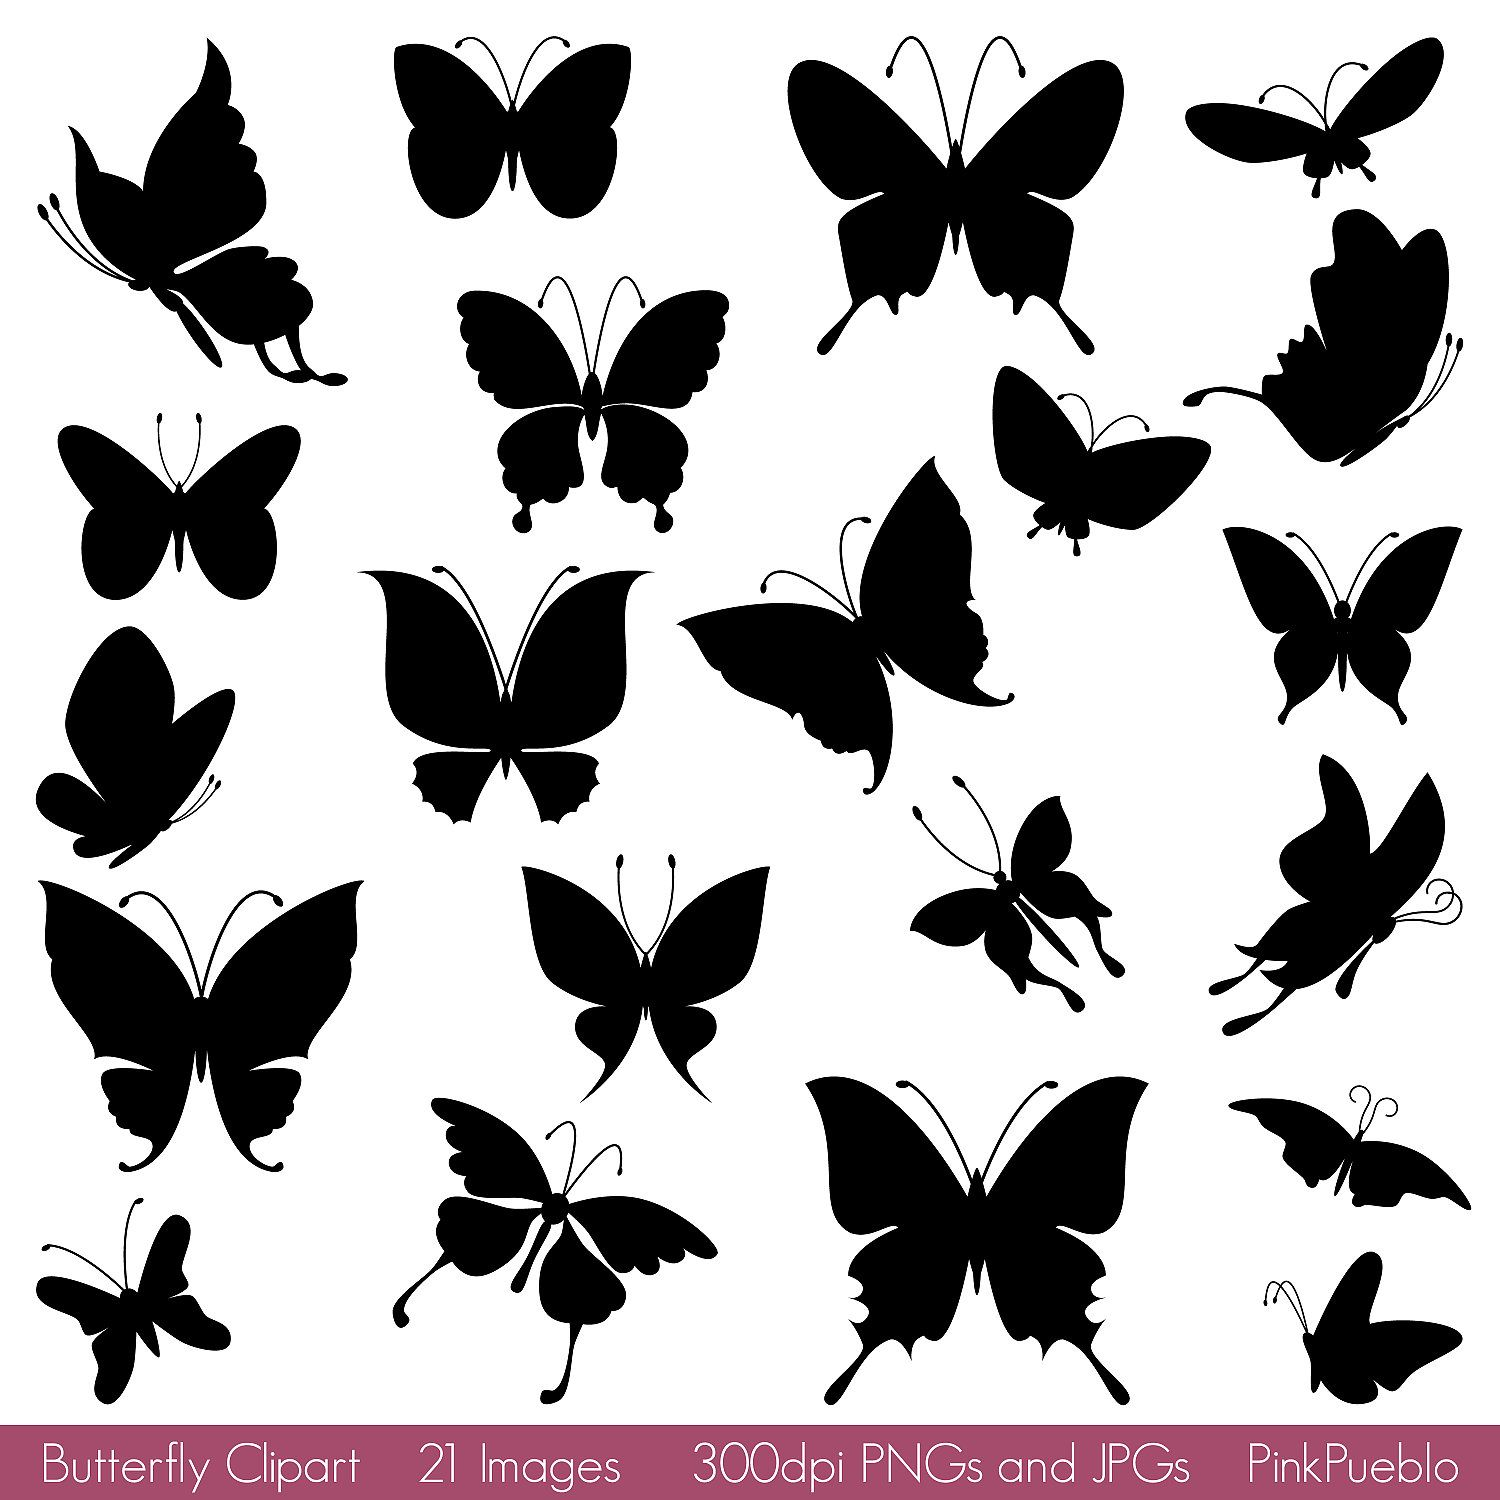 Butterfly clipart silhouette. Silhouettes clip art vector